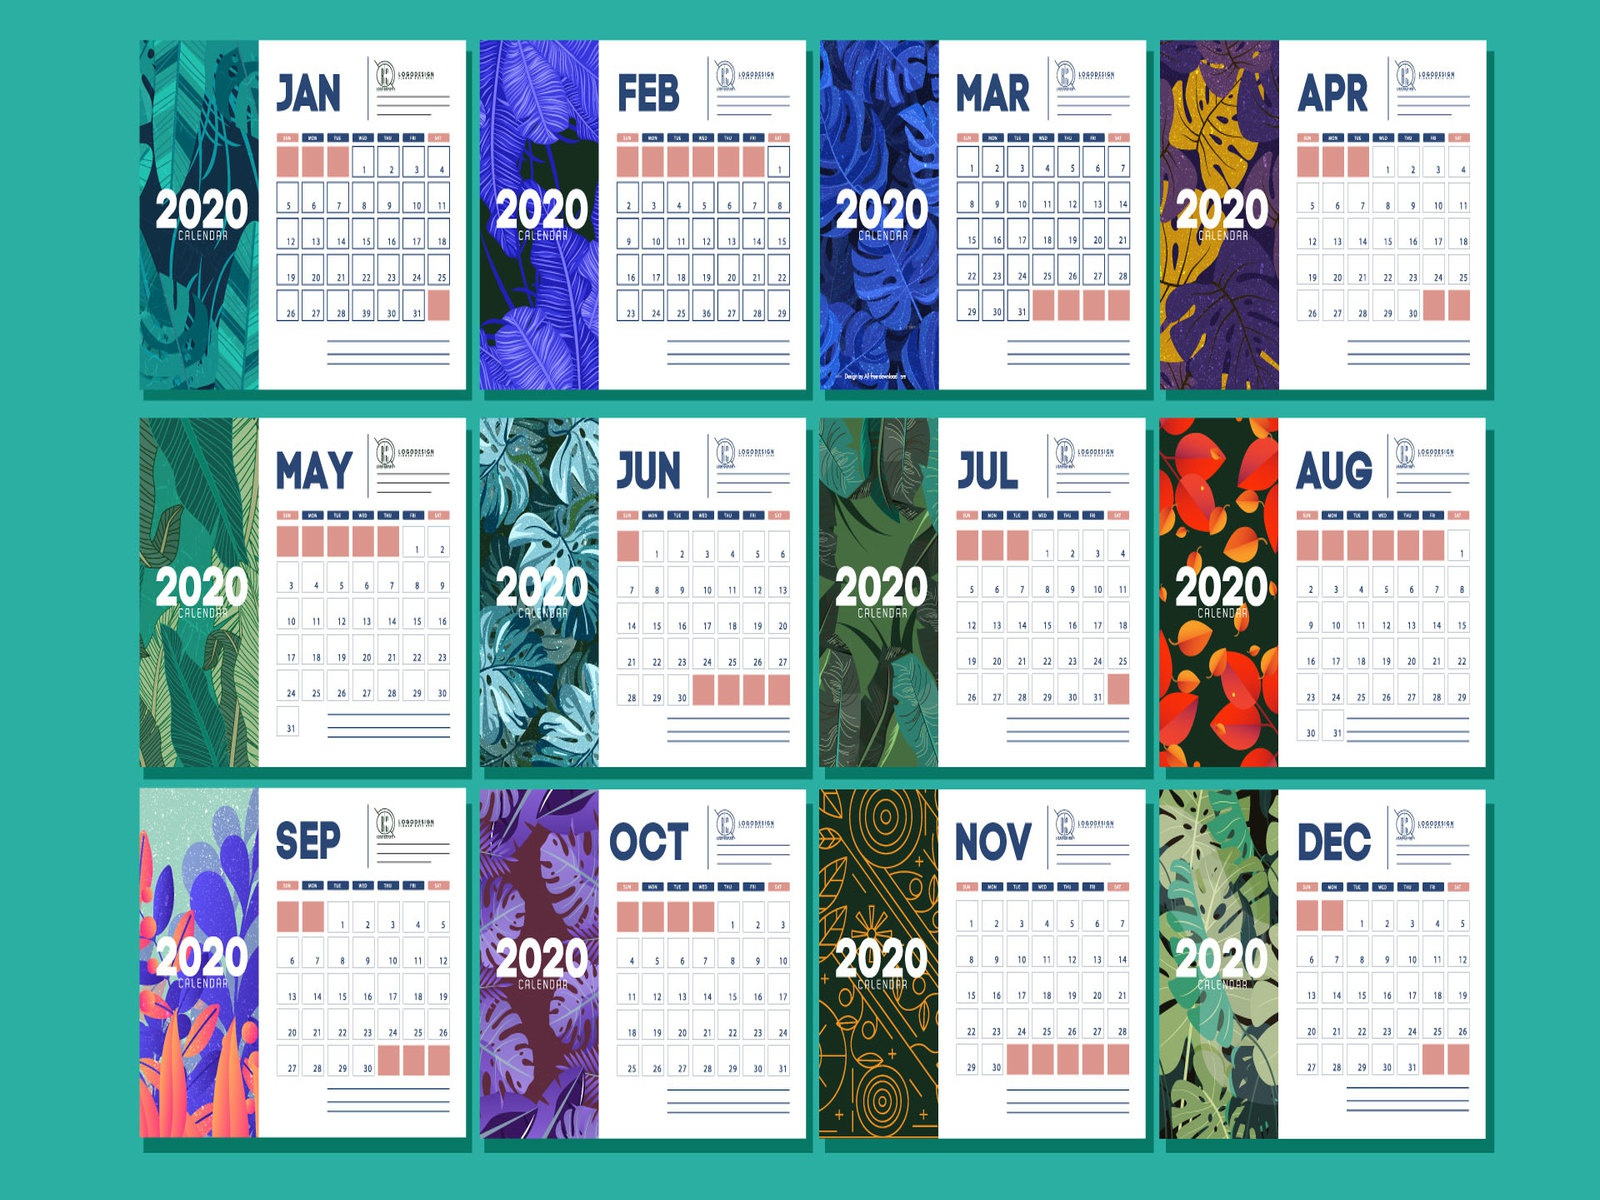 New Year 2020 Calendar Design By Md Shopon Hossen On Dribbble